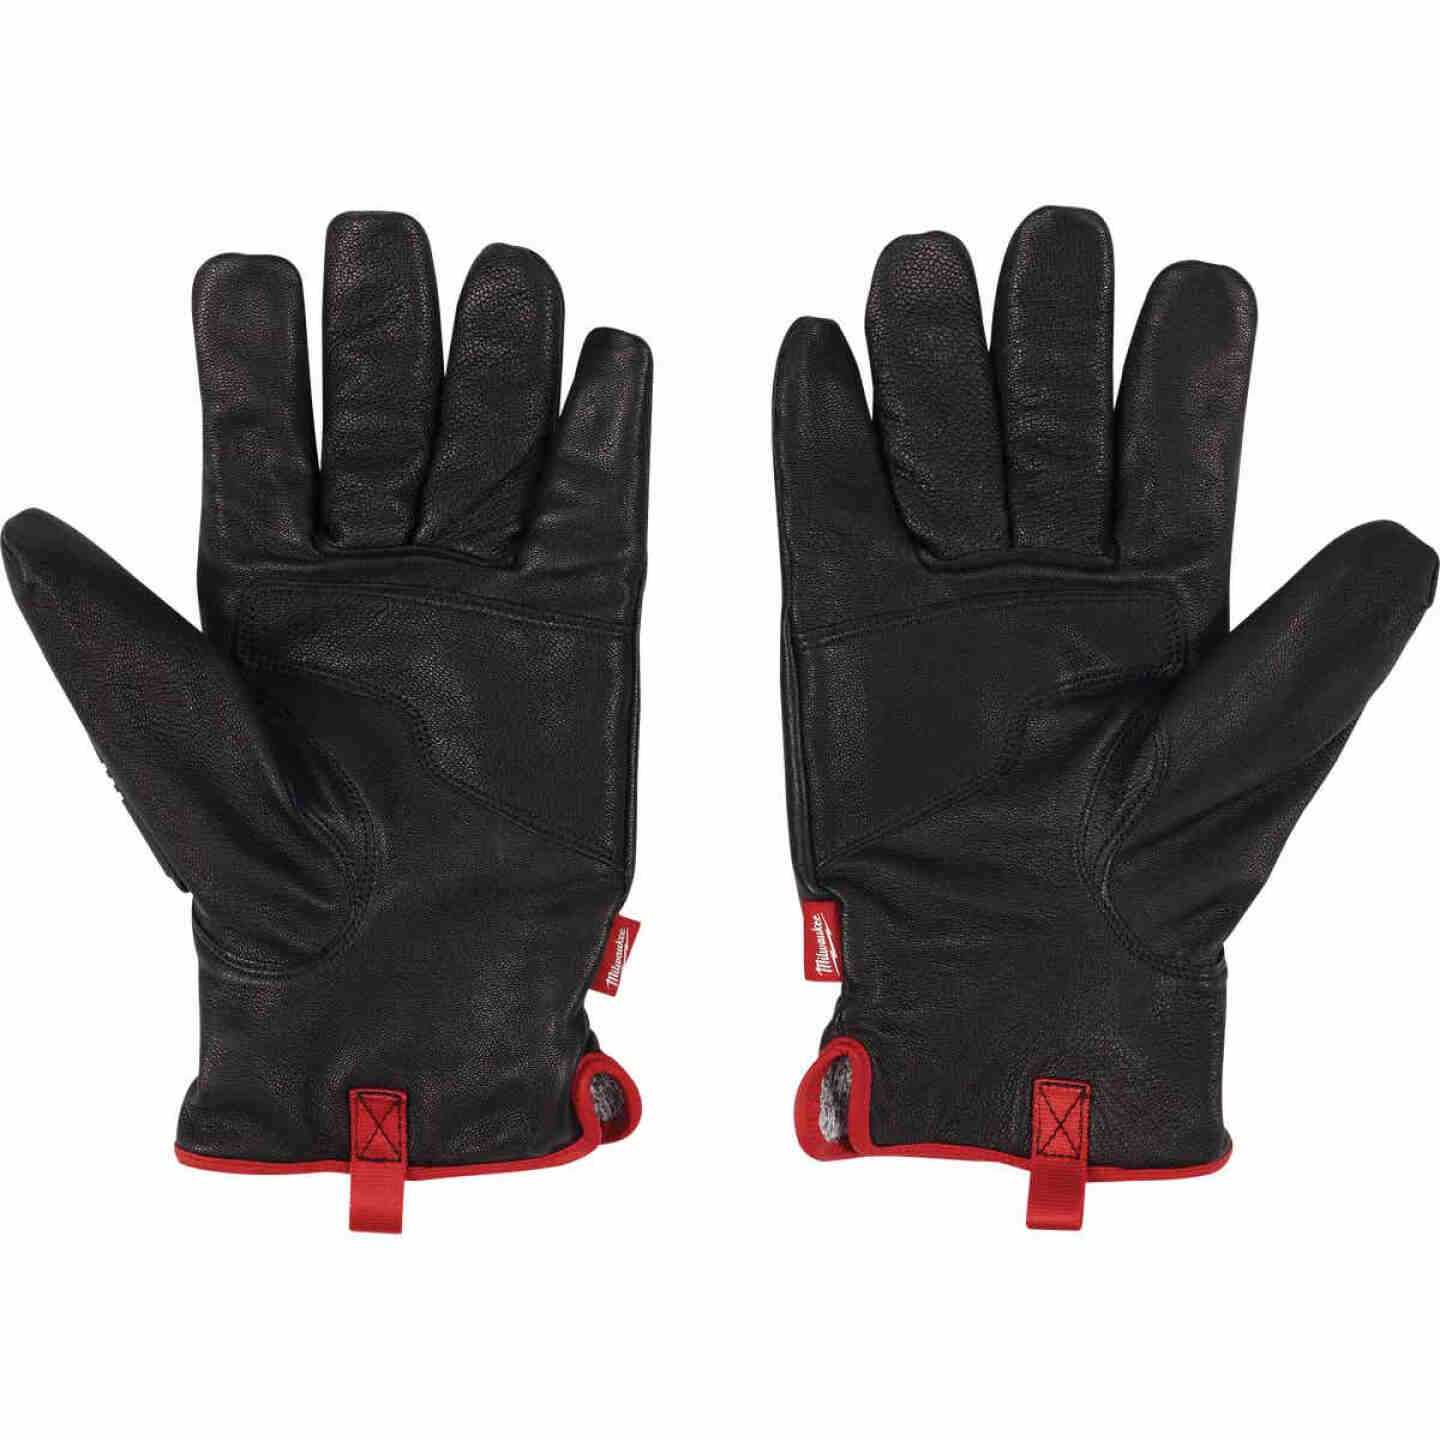 Milwaukee Impact Cut Level 5 Men's Large Goatskin Leather Work Gloves Image 1